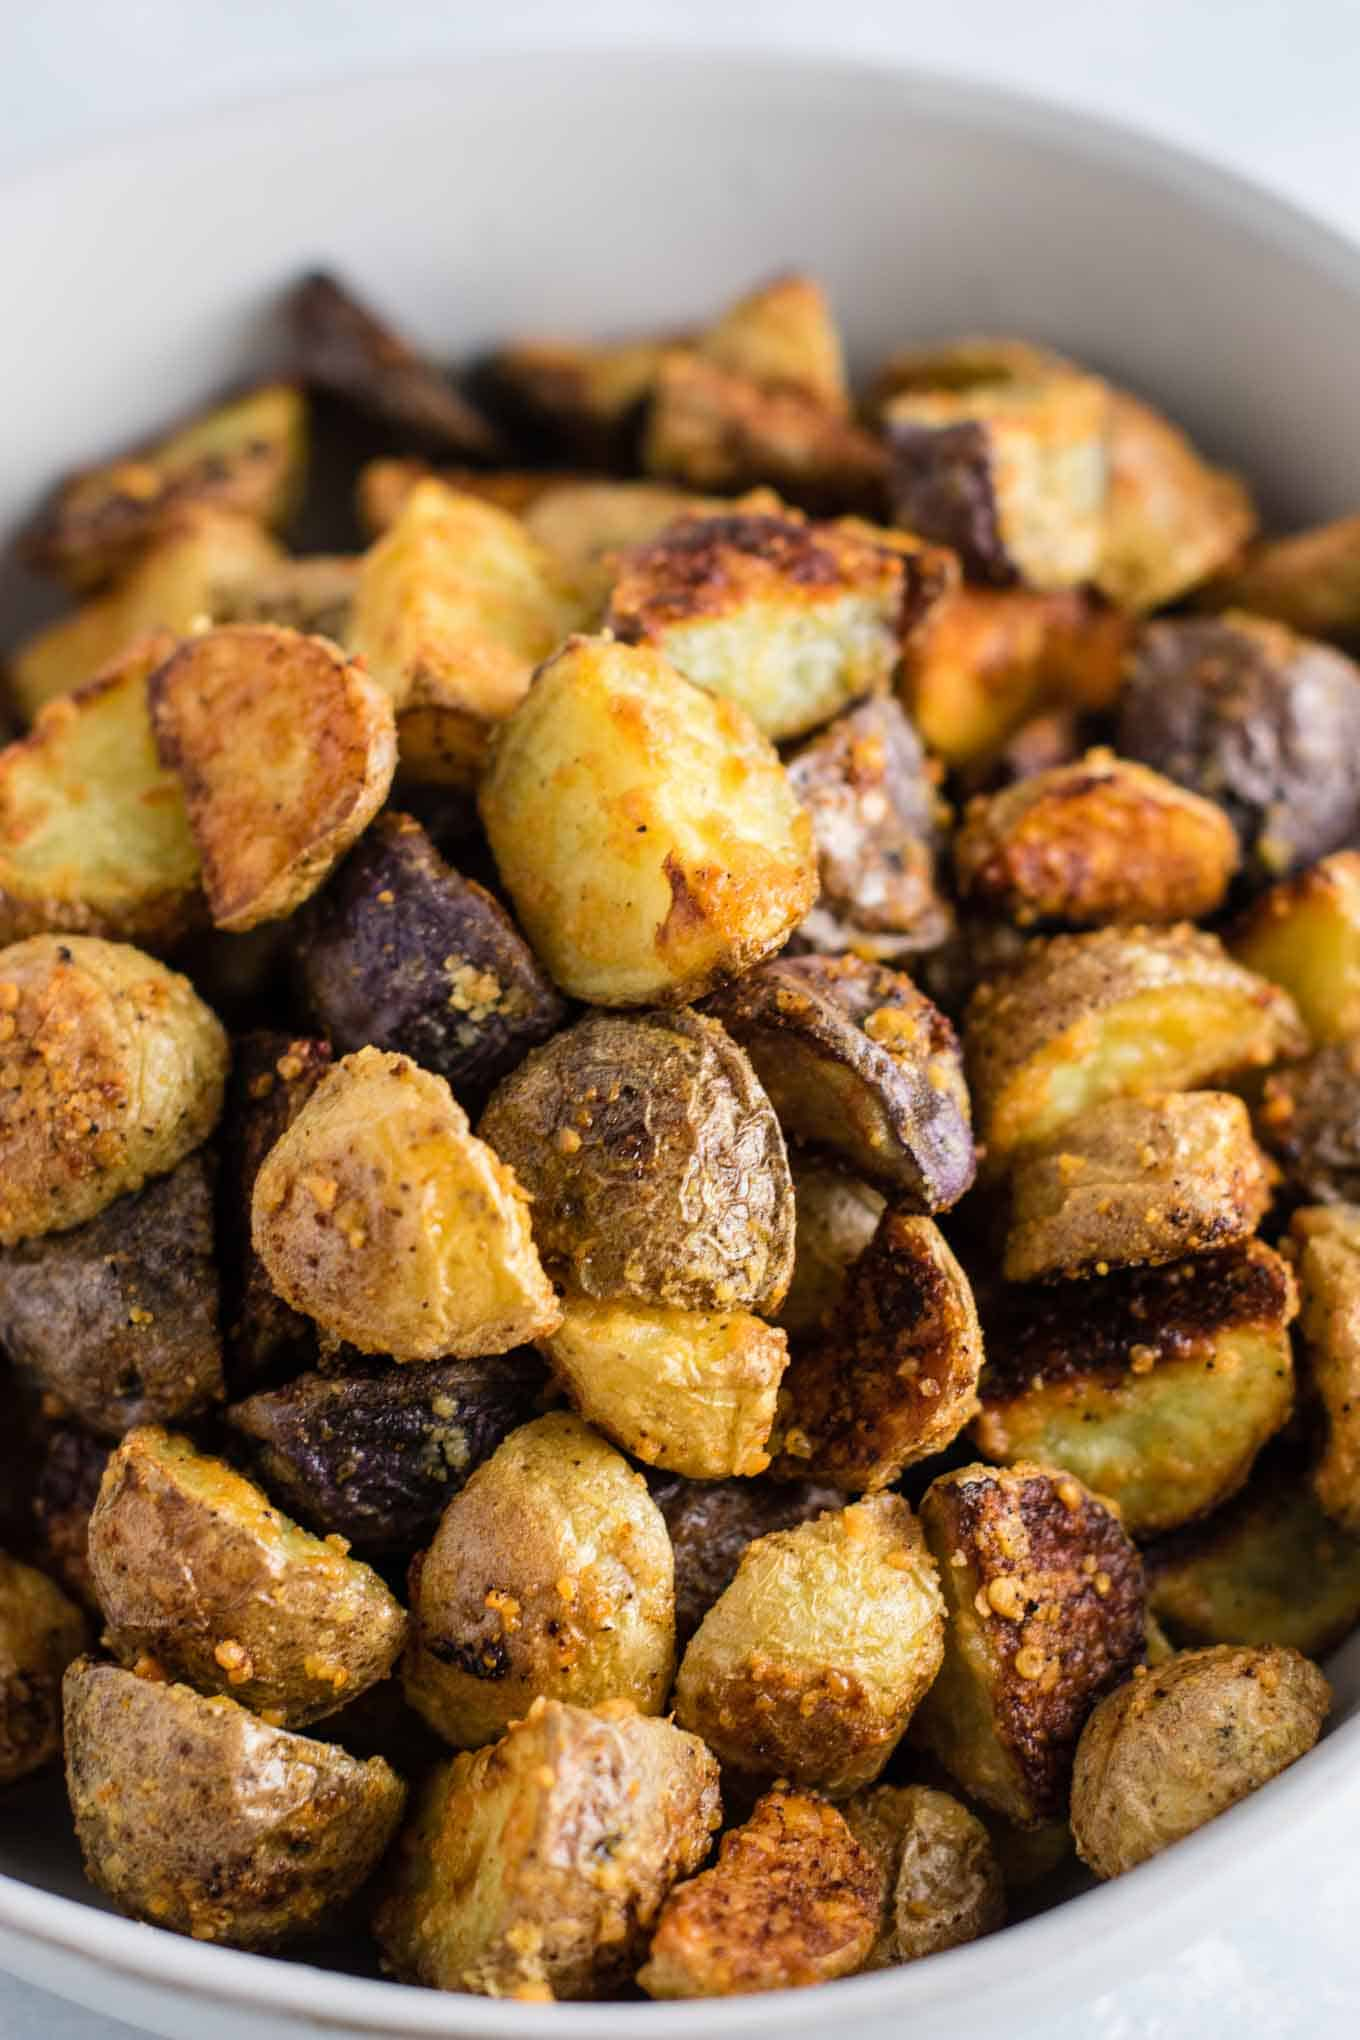 Simple Breakfast Recipes: Easy Roasted Garlic Potatoes